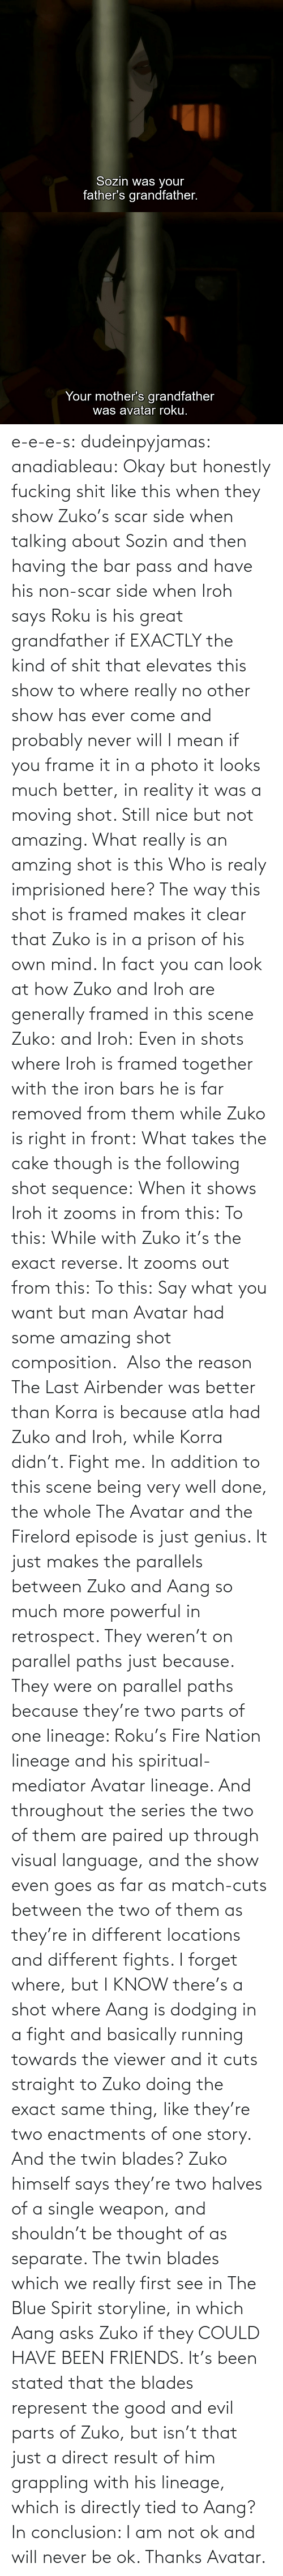 Removed: e-e-e-s: dudeinpyjamas:   anadiableau: Okay but honestly fucking shit like this when they show Zuko's scar side when talking about Sozin and then having the bar pass and have his non-scar side when Iroh says Roku is his great grandfather if EXACTLY the kind of shit that elevates this show to where really no other show has ever come and probably never will I mean if you frame it in a photo it looks much better, in reality it was a moving shot. Still nice but not amazing. What really is an amzing shot is this Who is realy imprisioned here? The way this shot is framed makes it clear that Zuko is in a prison of his own mind. In fact you can look at how Zuko and Iroh are generally framed in this scene Zuko: and Iroh: Even in shots where Iroh is framed together with the iron bars he is far removed from them while Zuko is right in front:  What takes the cake though is the following shot sequence: When it shows Iroh it zooms in from this: To this: While with Zuko it's the exact reverse. It zooms out from this: To this: Say what you want but man Avatar had some amazing shot composition.   Also the reason The Last Airbender was better than Korra is because atla had Zuko and Iroh, while Korra didn't. Fight me.    In addition to this scene being very well done, the whole The Avatar and the Firelord episode is just genius.  It just makes the parallels between Zuko and Aang so much more powerful in retrospect.  They weren't on parallel paths just because.  They were on parallel paths because they're two parts of one lineage: Roku's Fire Nation lineage and his spiritual-mediator Avatar lineage.  And throughout the series the two of them are paired up through visual language, and the show even goes as far as match-cuts between the two of them as they're in different locations and different fights.  I forget where, but I KNOW there's a shot where Aang is dodging in a fight and basically running towards the viewer and it cuts straight to Zuko doing the exact same thing, like they're two enactments of one story.   And the twin blades?  Zuko himself says they're two halves of a single weapon, and shouldn't be thought of as separate.  The twin blades which we really first see in The Blue Spirit storyline, in which Aang asks Zuko if they COULD HAVE BEEN FRIENDS.  It's been stated that the blades represent the good and evil parts of Zuko, but isn't that just a direct result of him grappling with his lineage, which is directly tied to Aang? In conclusion: I am not ok and will never be ok.  Thanks Avatar.